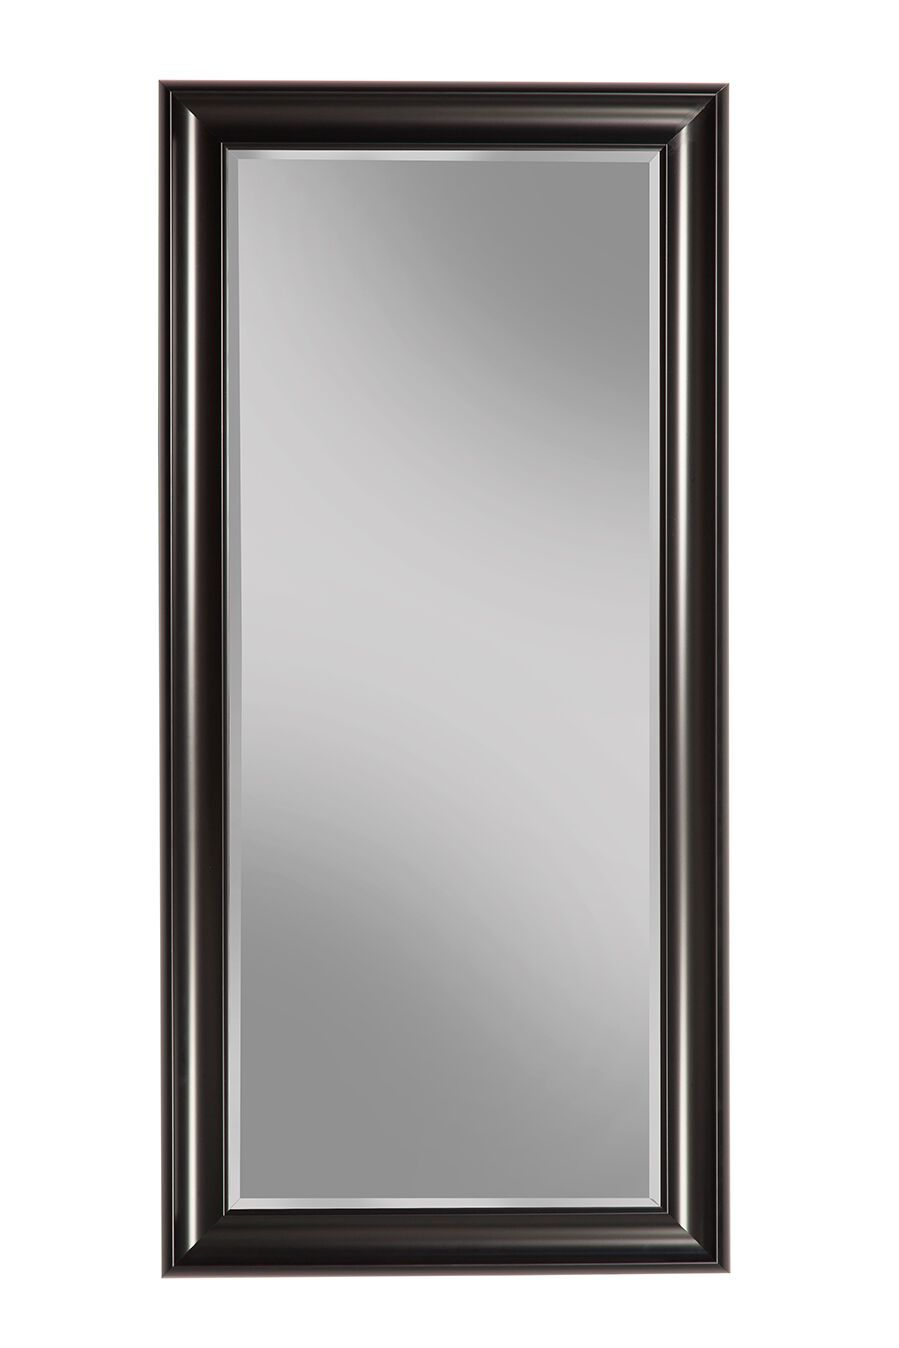 Full Length Leaner Mirror Black 65 X 31 By Martin Svensson Home Walmart Com In 2021 Leaner Mirror Wall Mounted Mirror Mirror